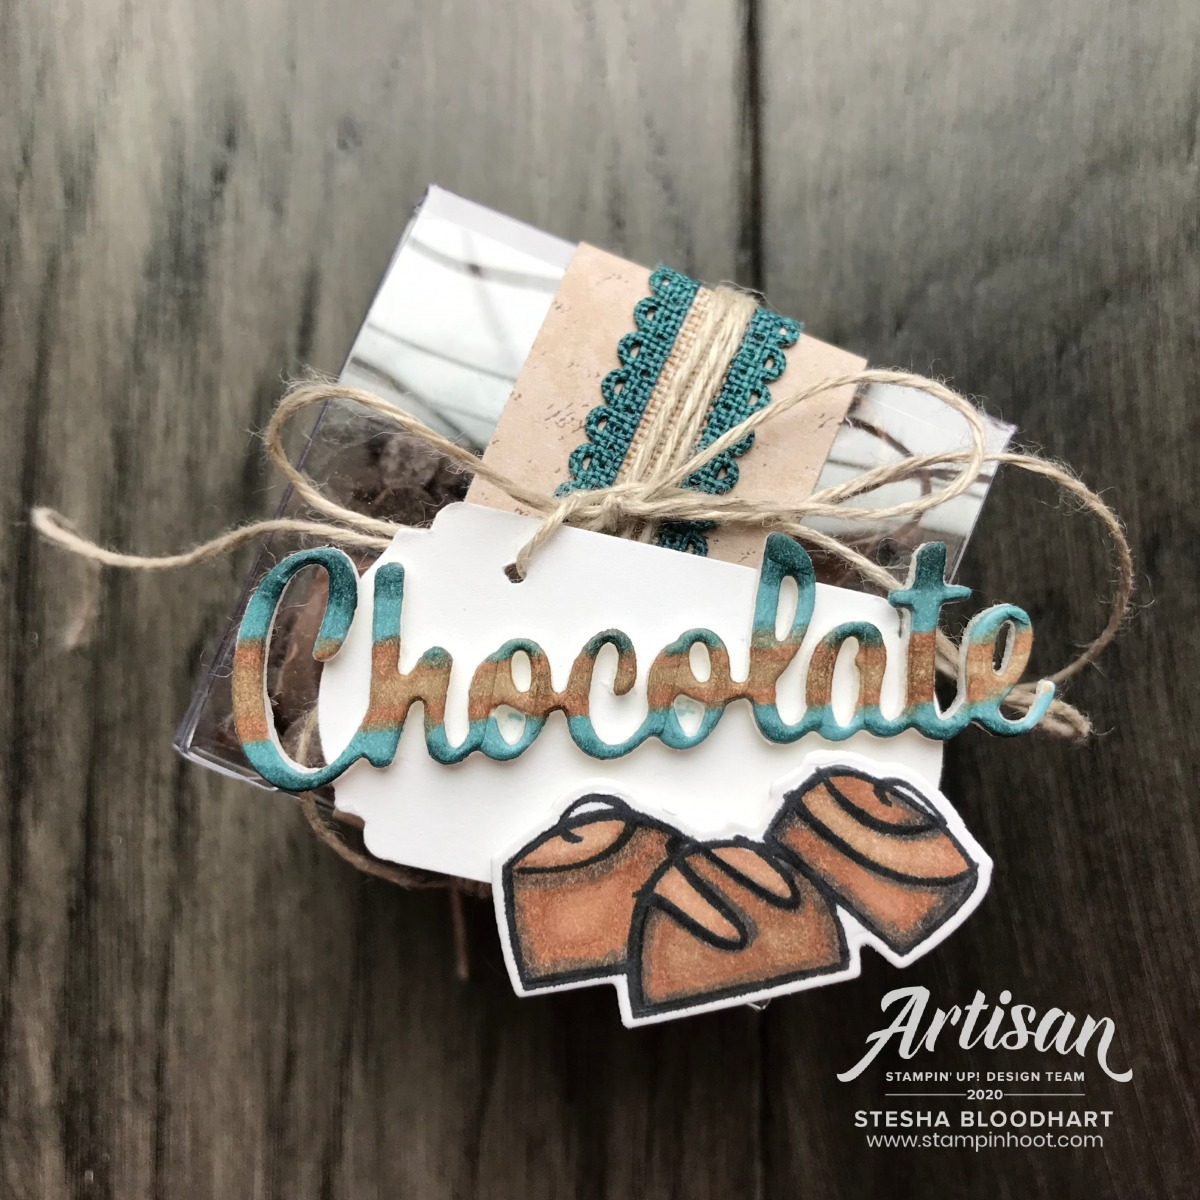 Nothing's Better Than Bundle From Stampin' Up! Chocolate Clear Treat Box created by Stesha Bloodhart, Stampin' Hoot! 2020 Artisan Design Team Blog Hop